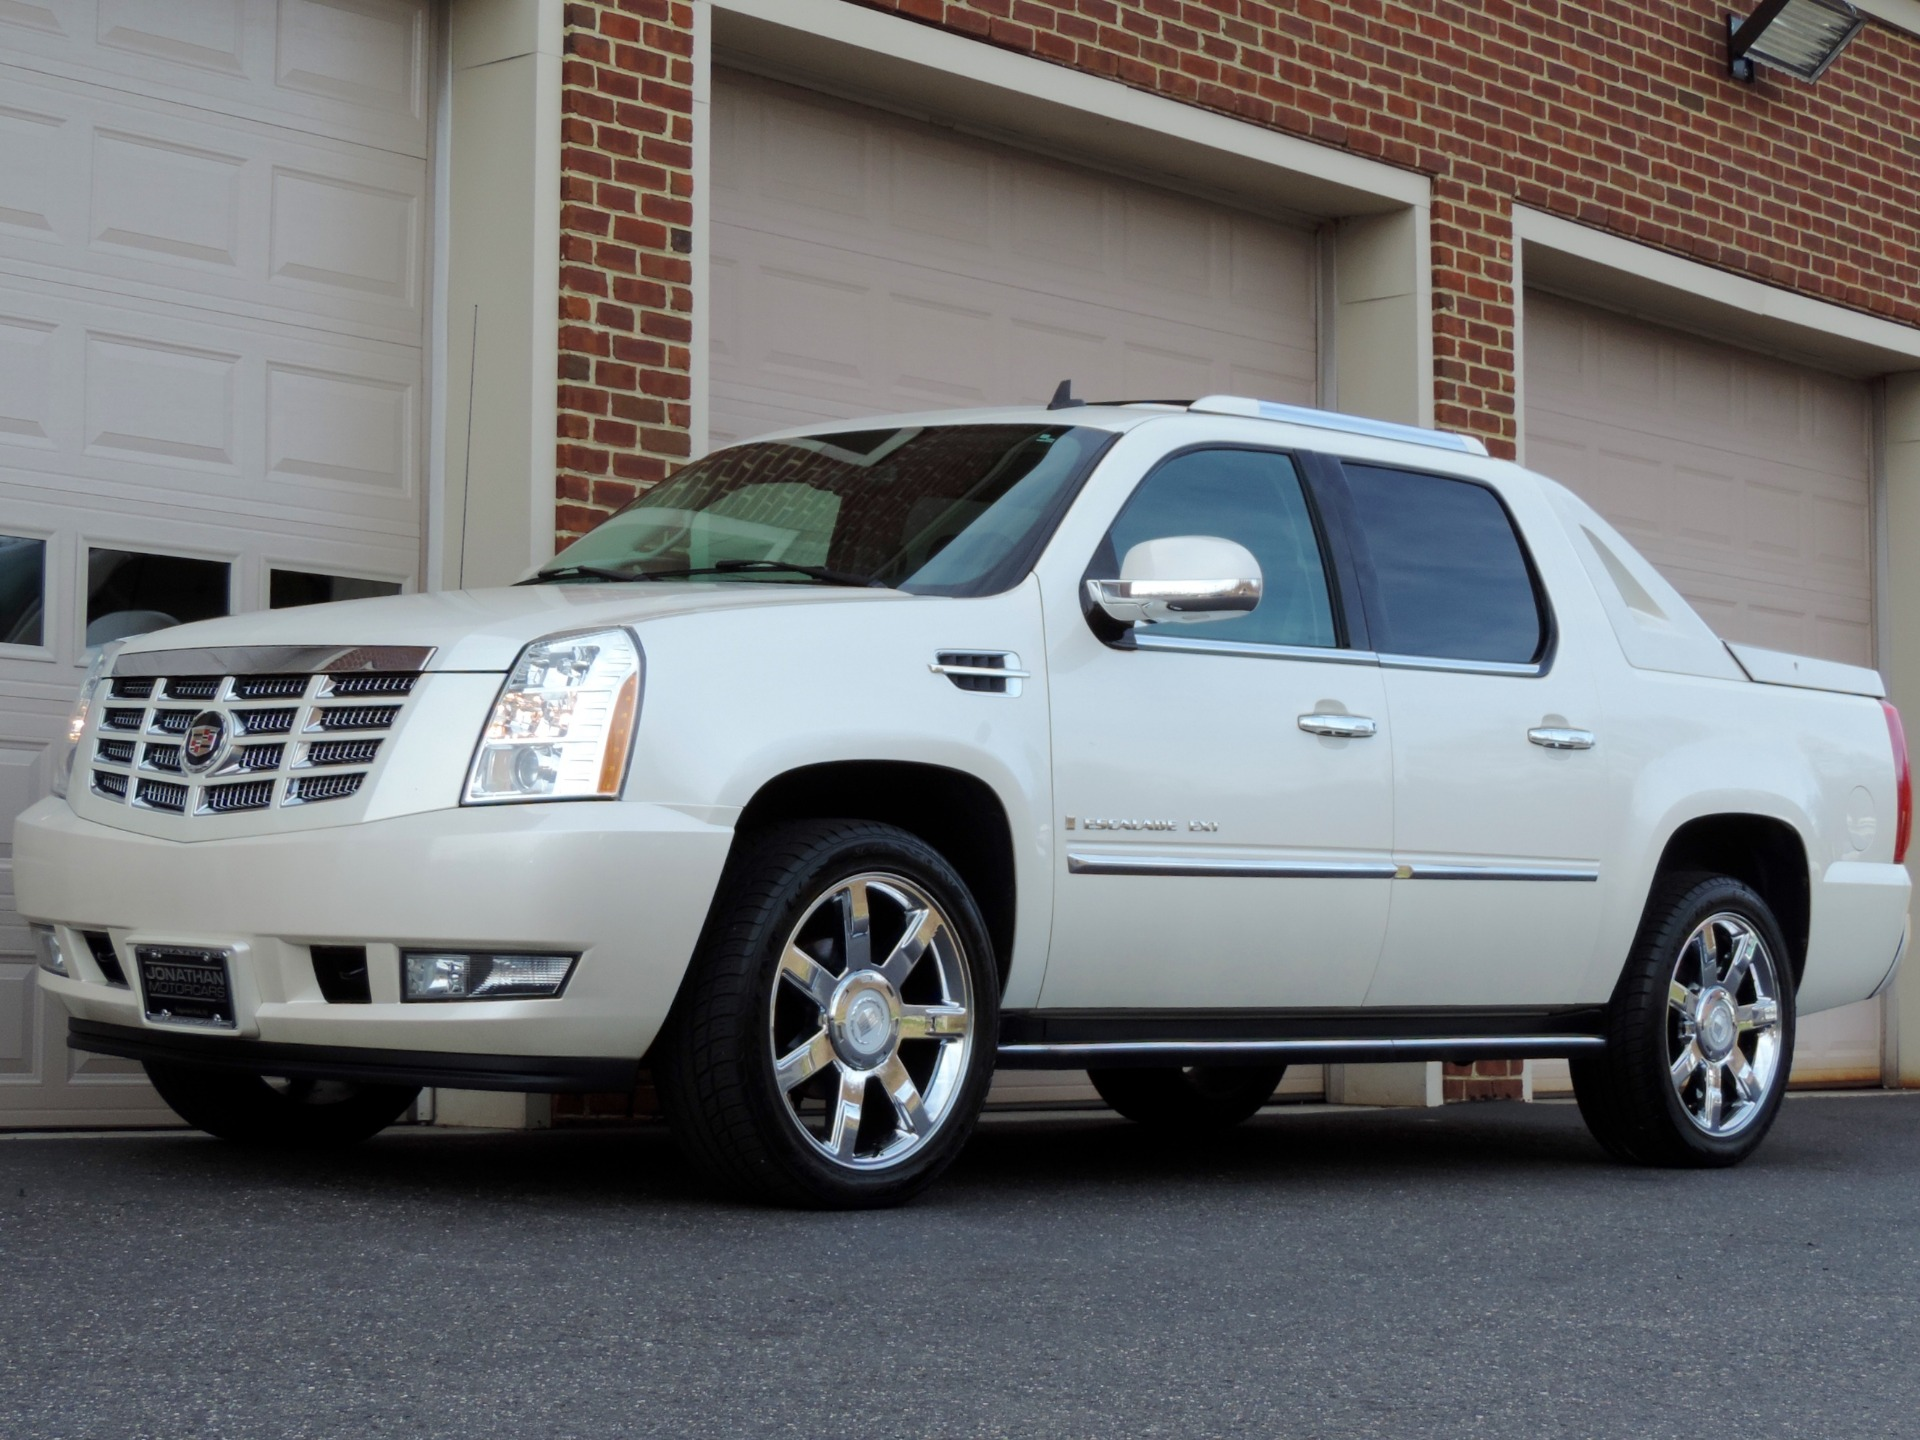 2007 Cadillac Escalade Ext Stock 159144 For Sale Near